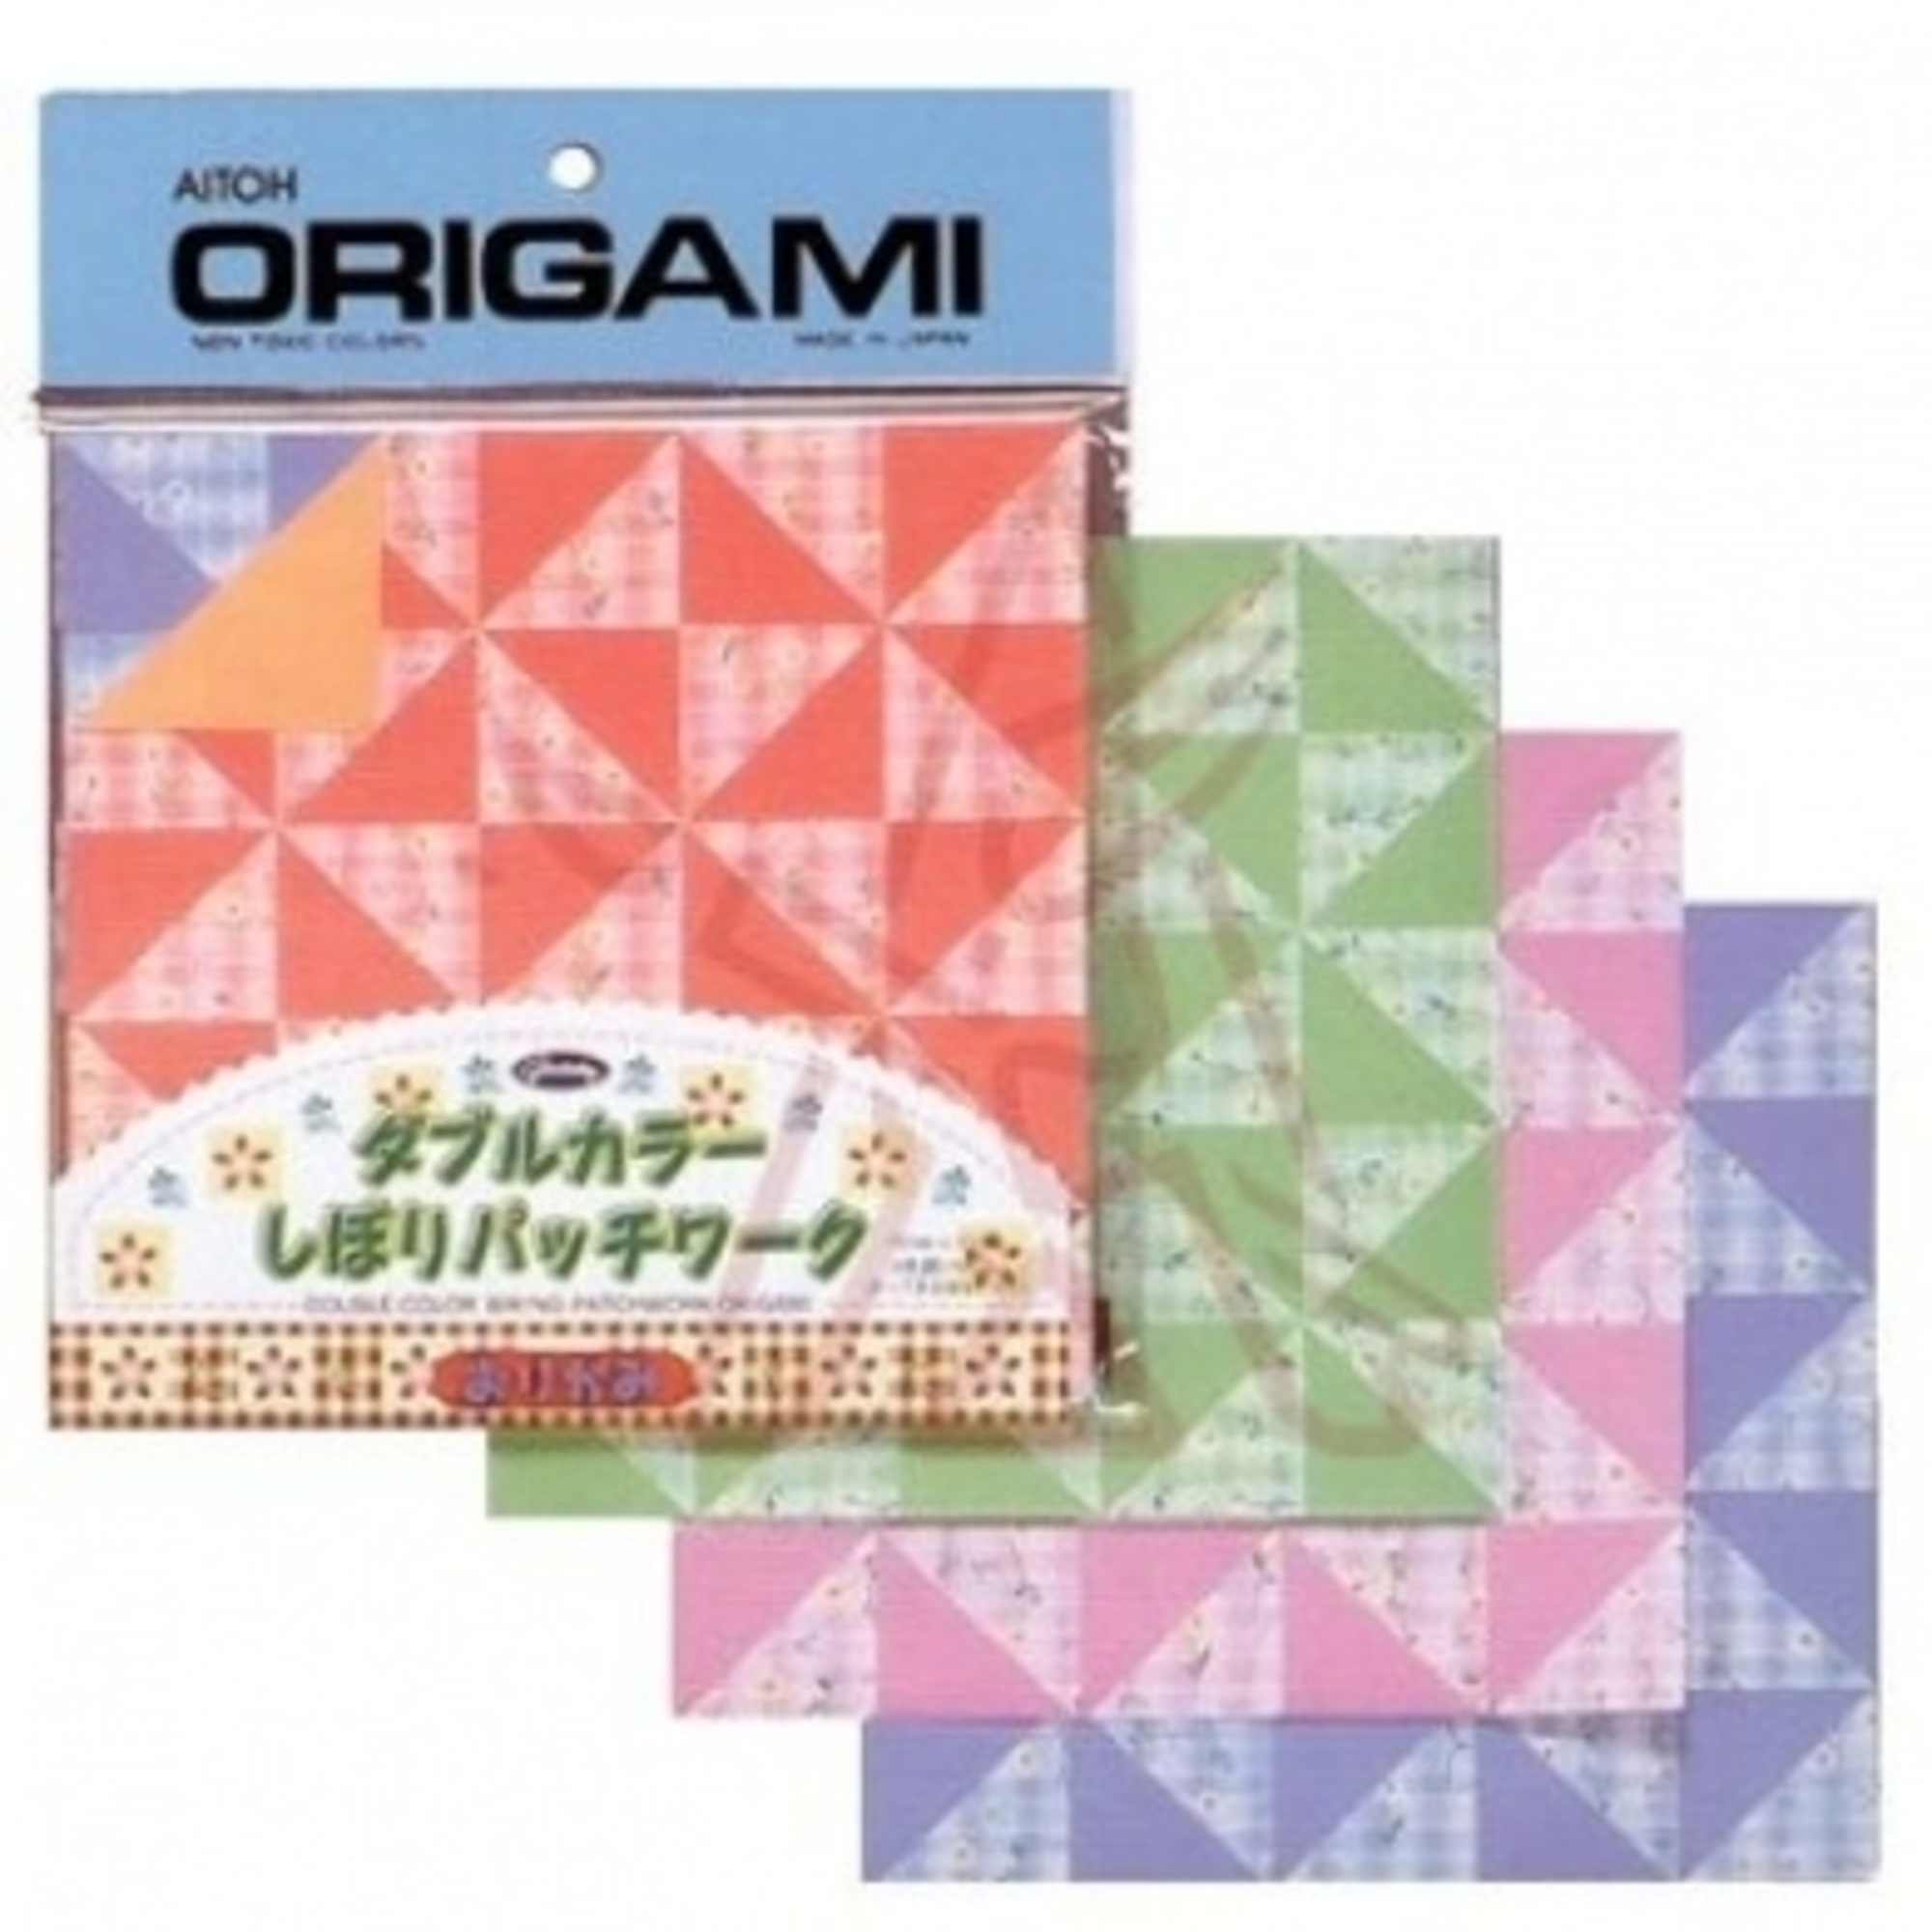 300 Sheets Origami Paper Office Products - S5JW88R39A | 2000x2000